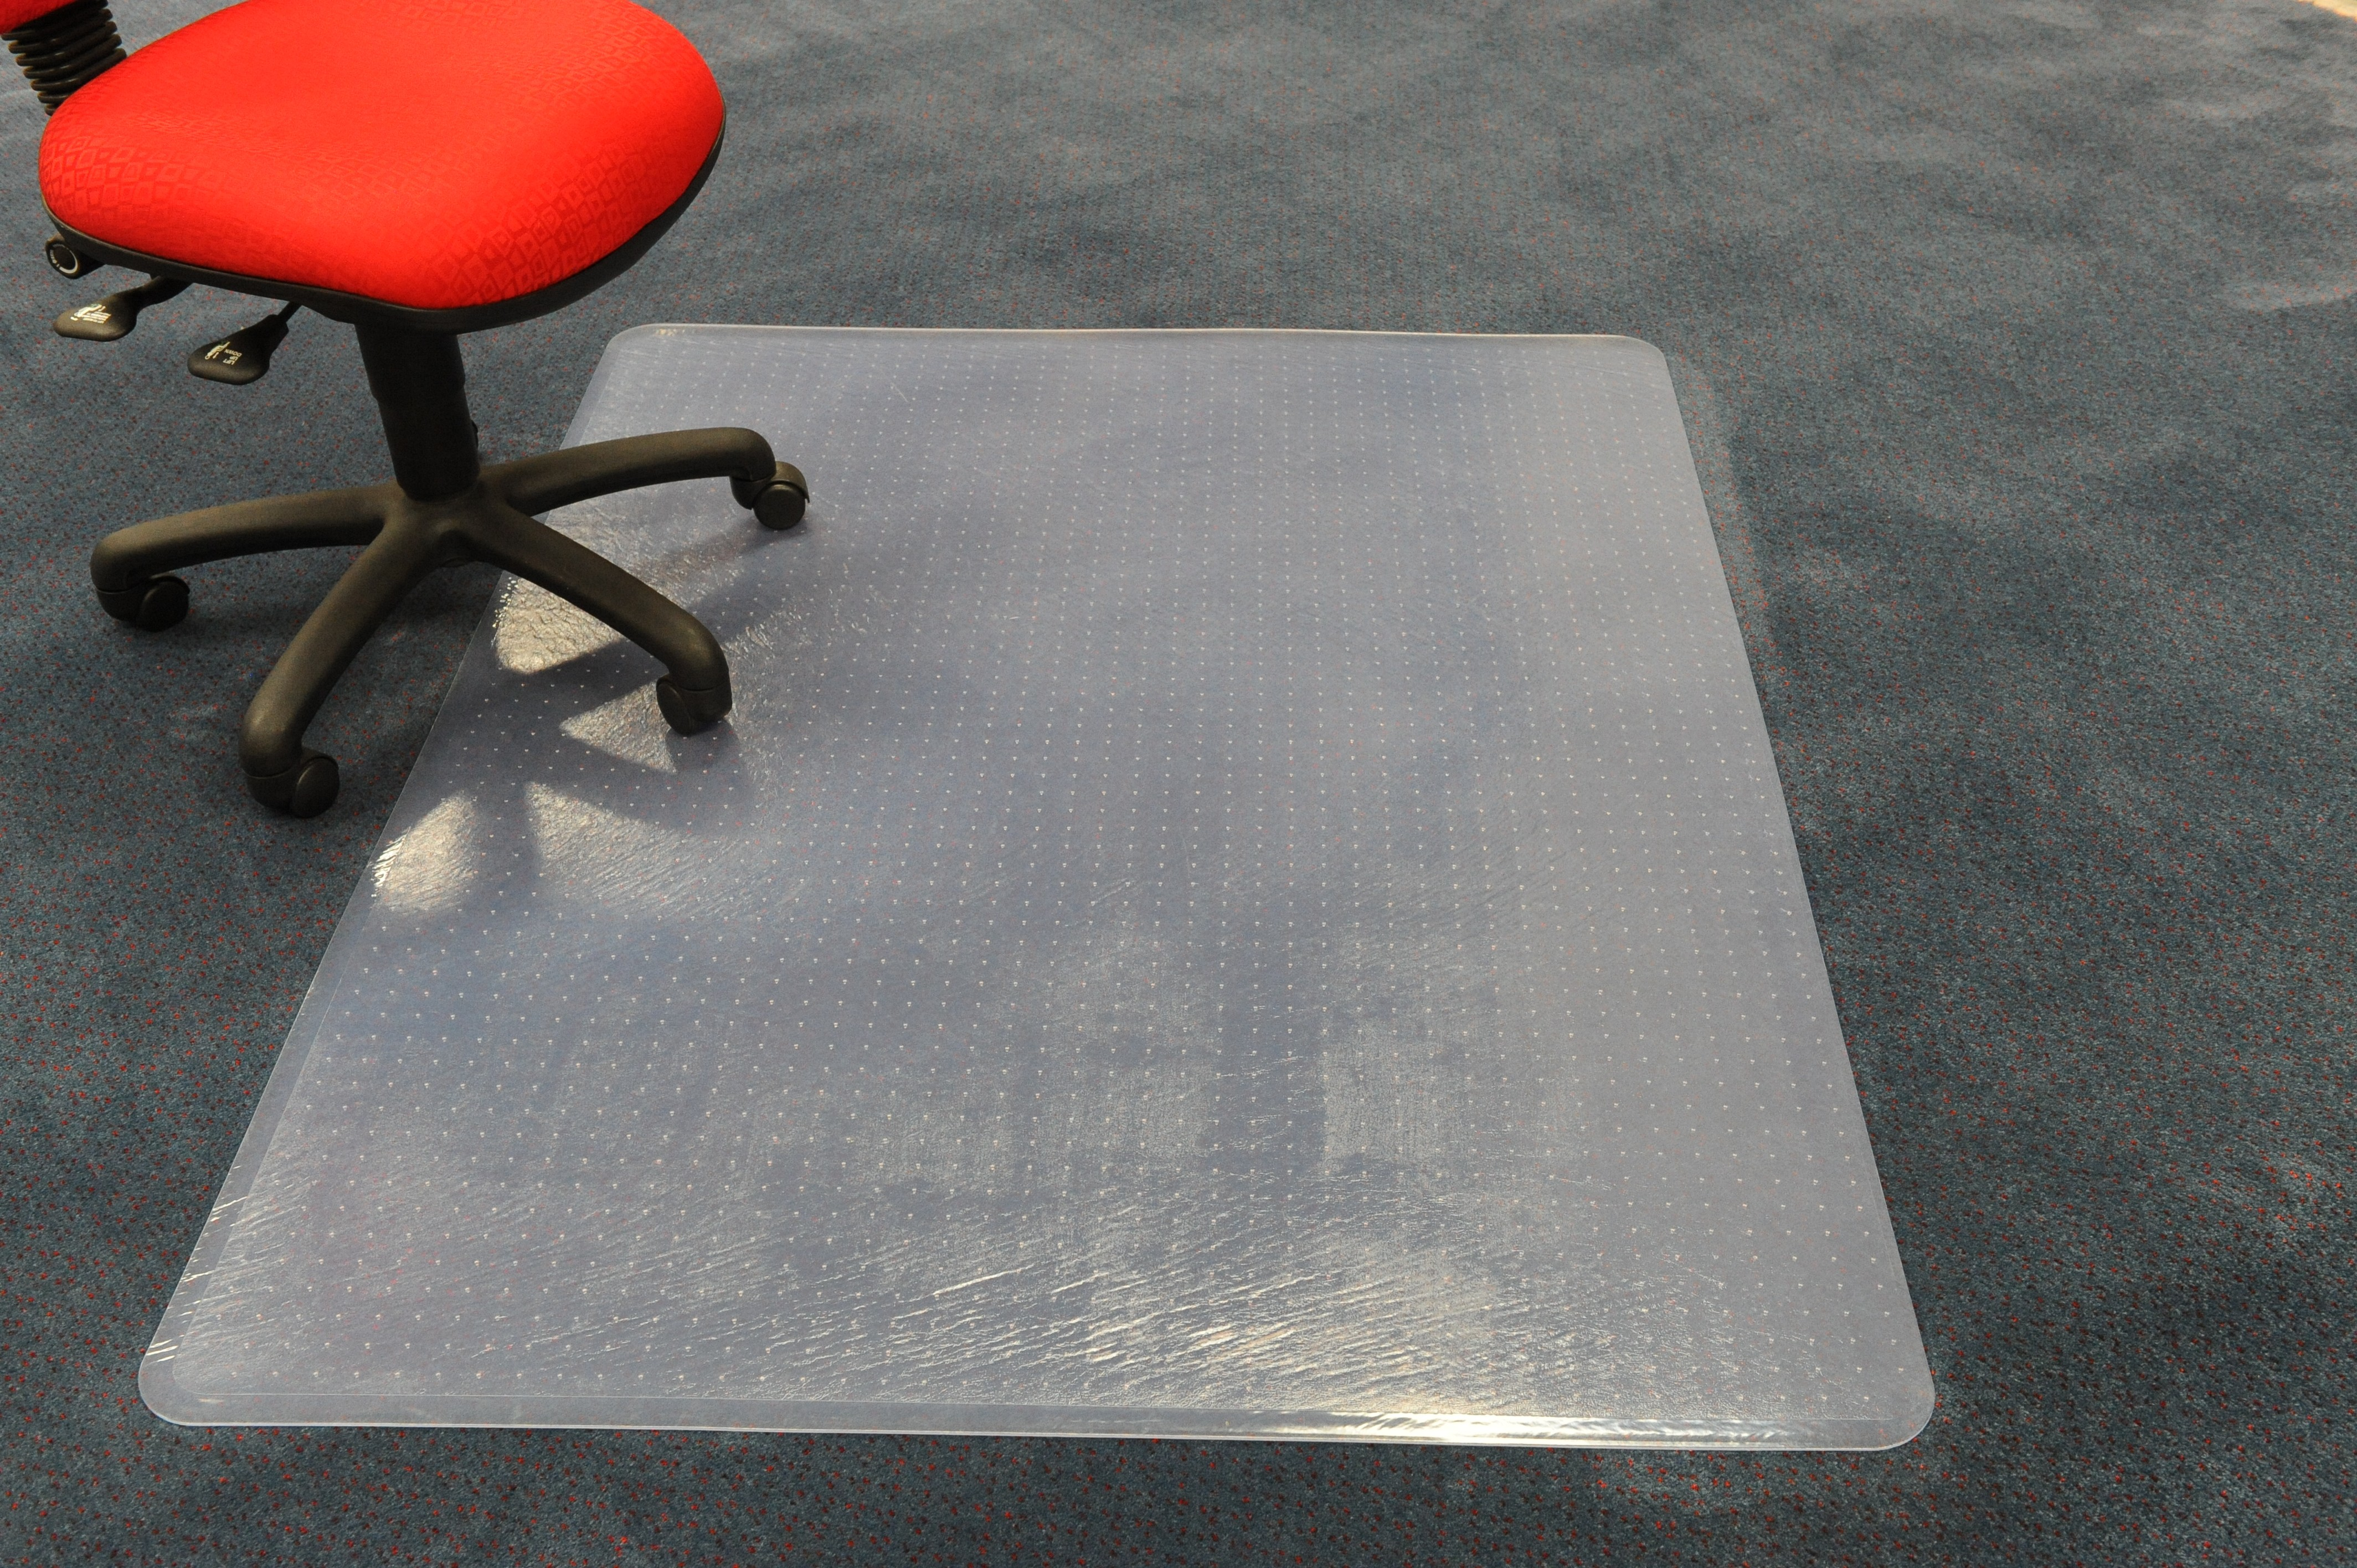 CHAIRMAT LOW PILE RECTANGLE 1160mm x 1510mm #AMP50G (price excludes gst)